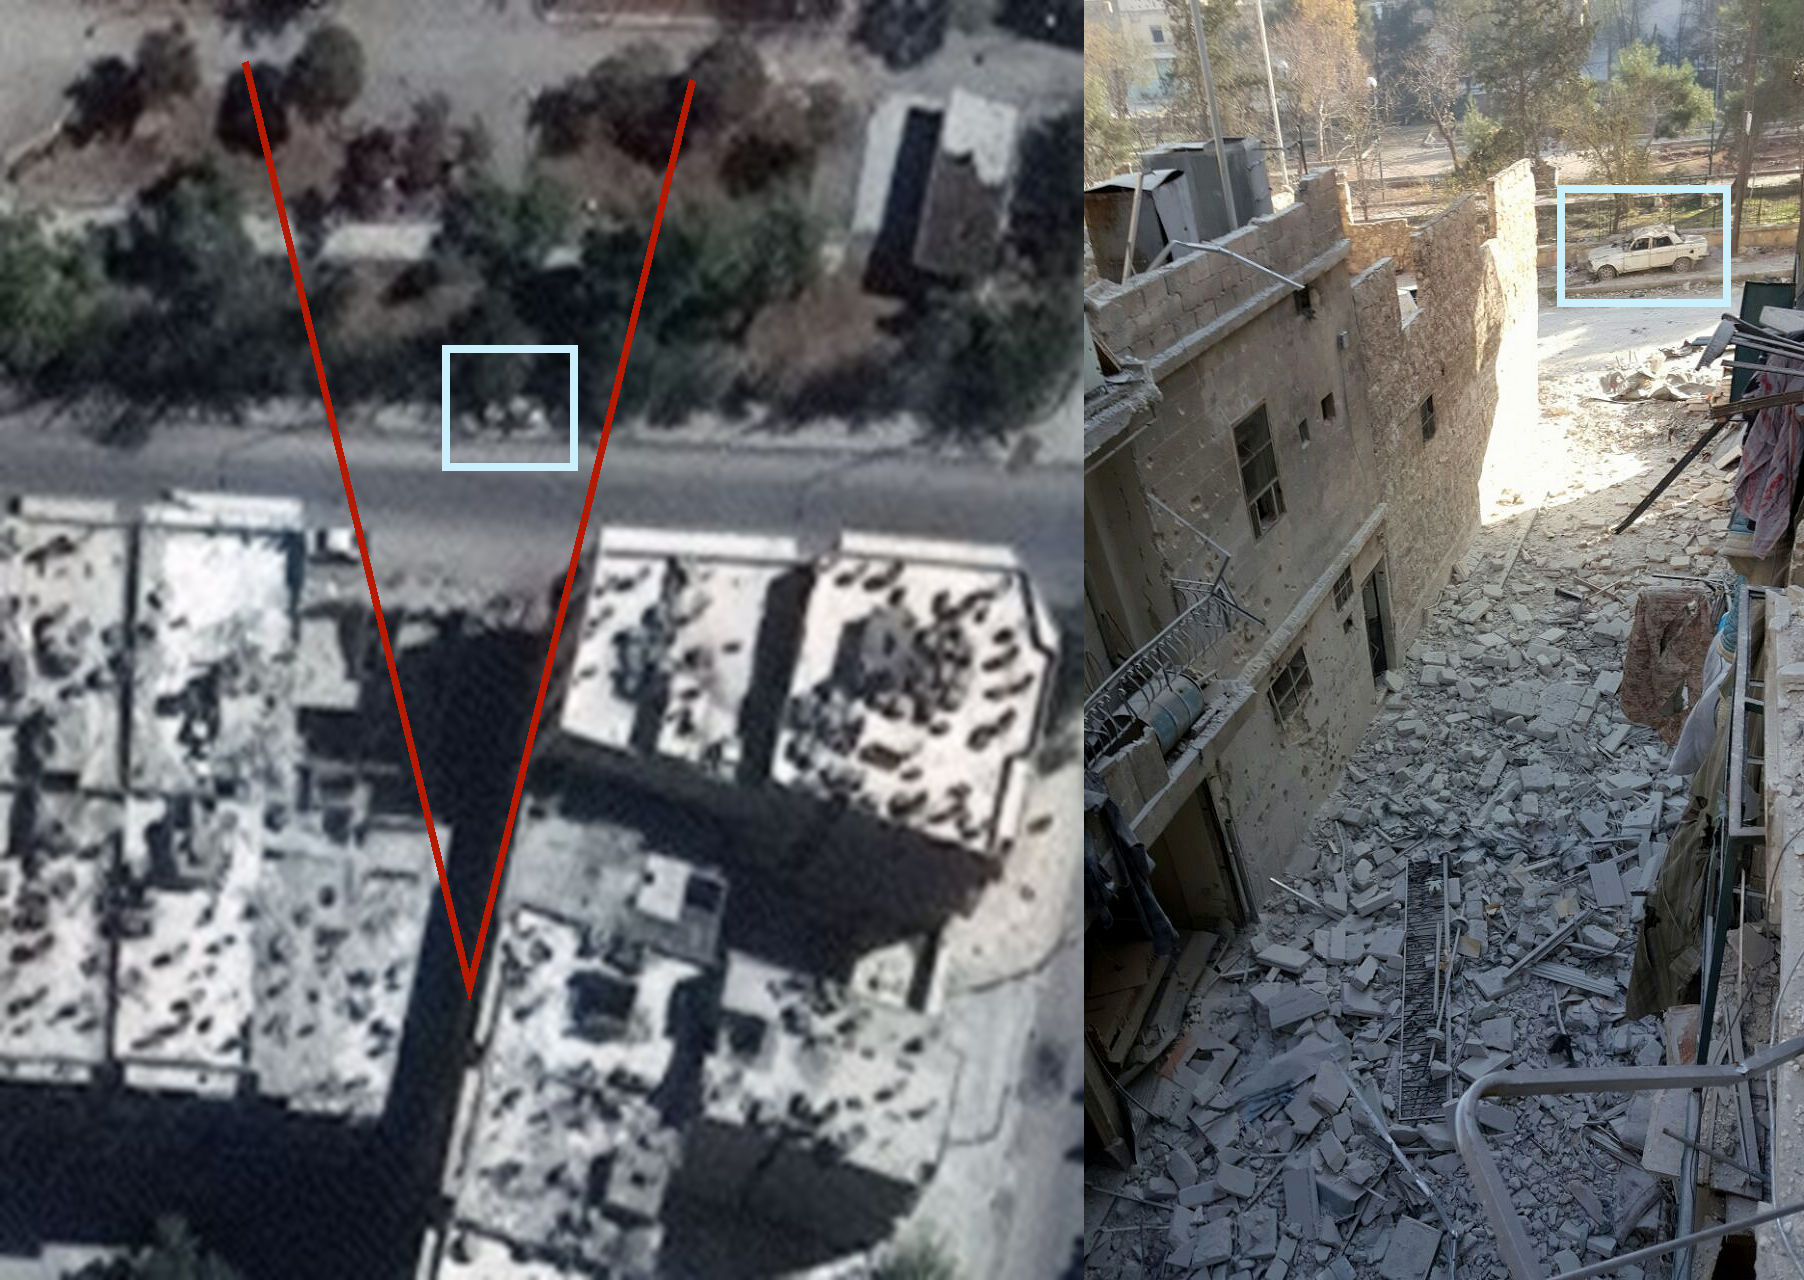 Image 21: Geolocation of bombed house